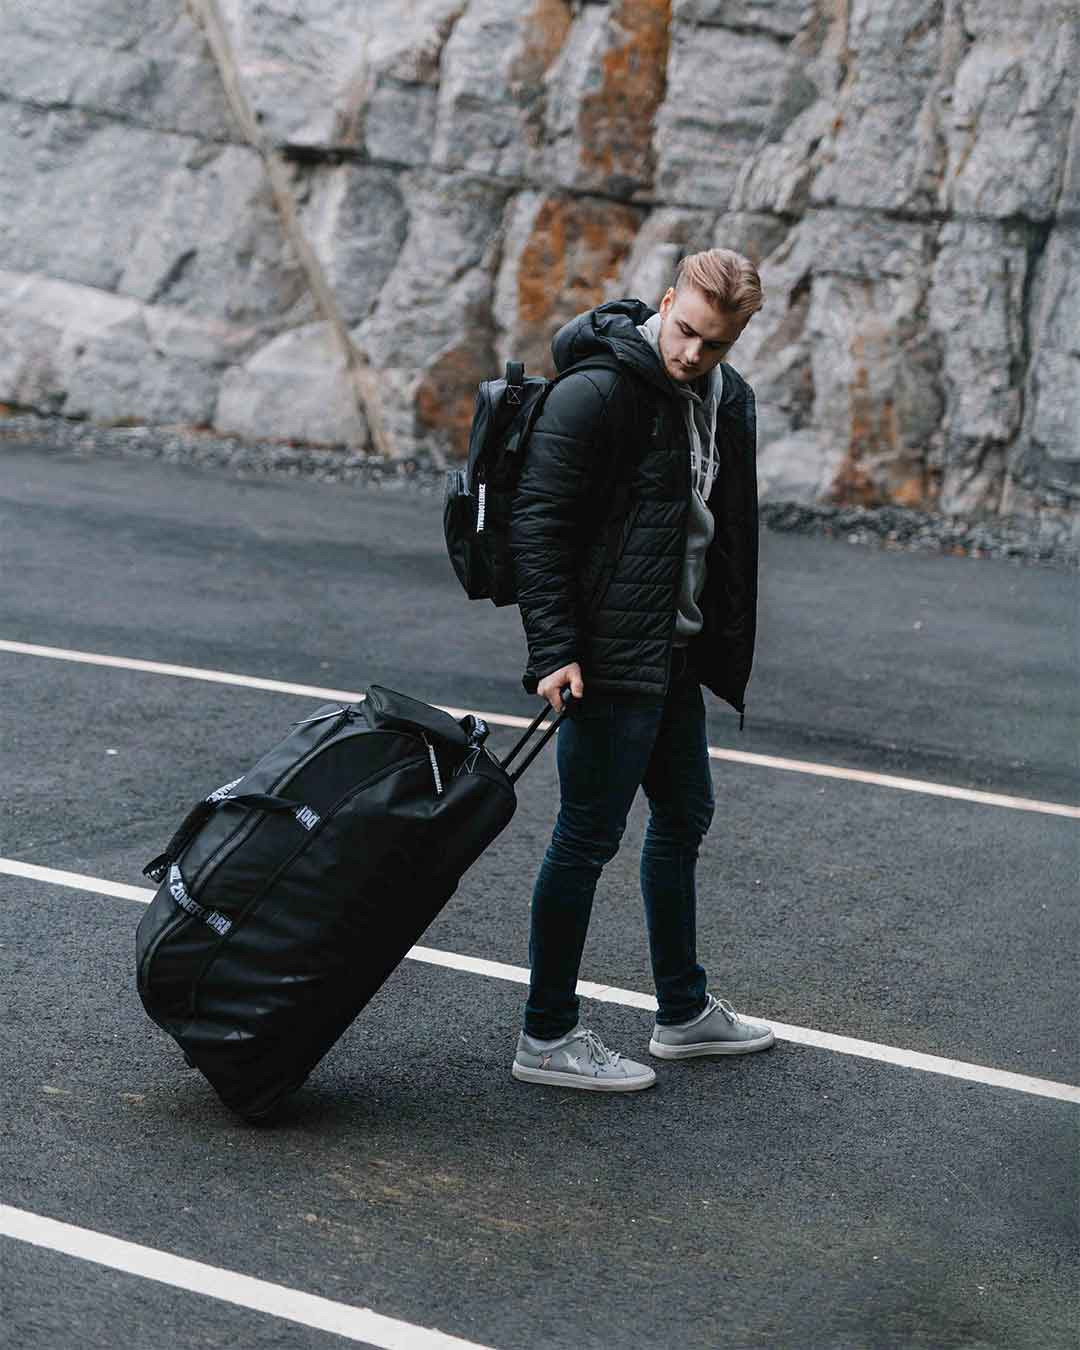 SPORT BAG BRILLIANT LARGE WITH WHEELS